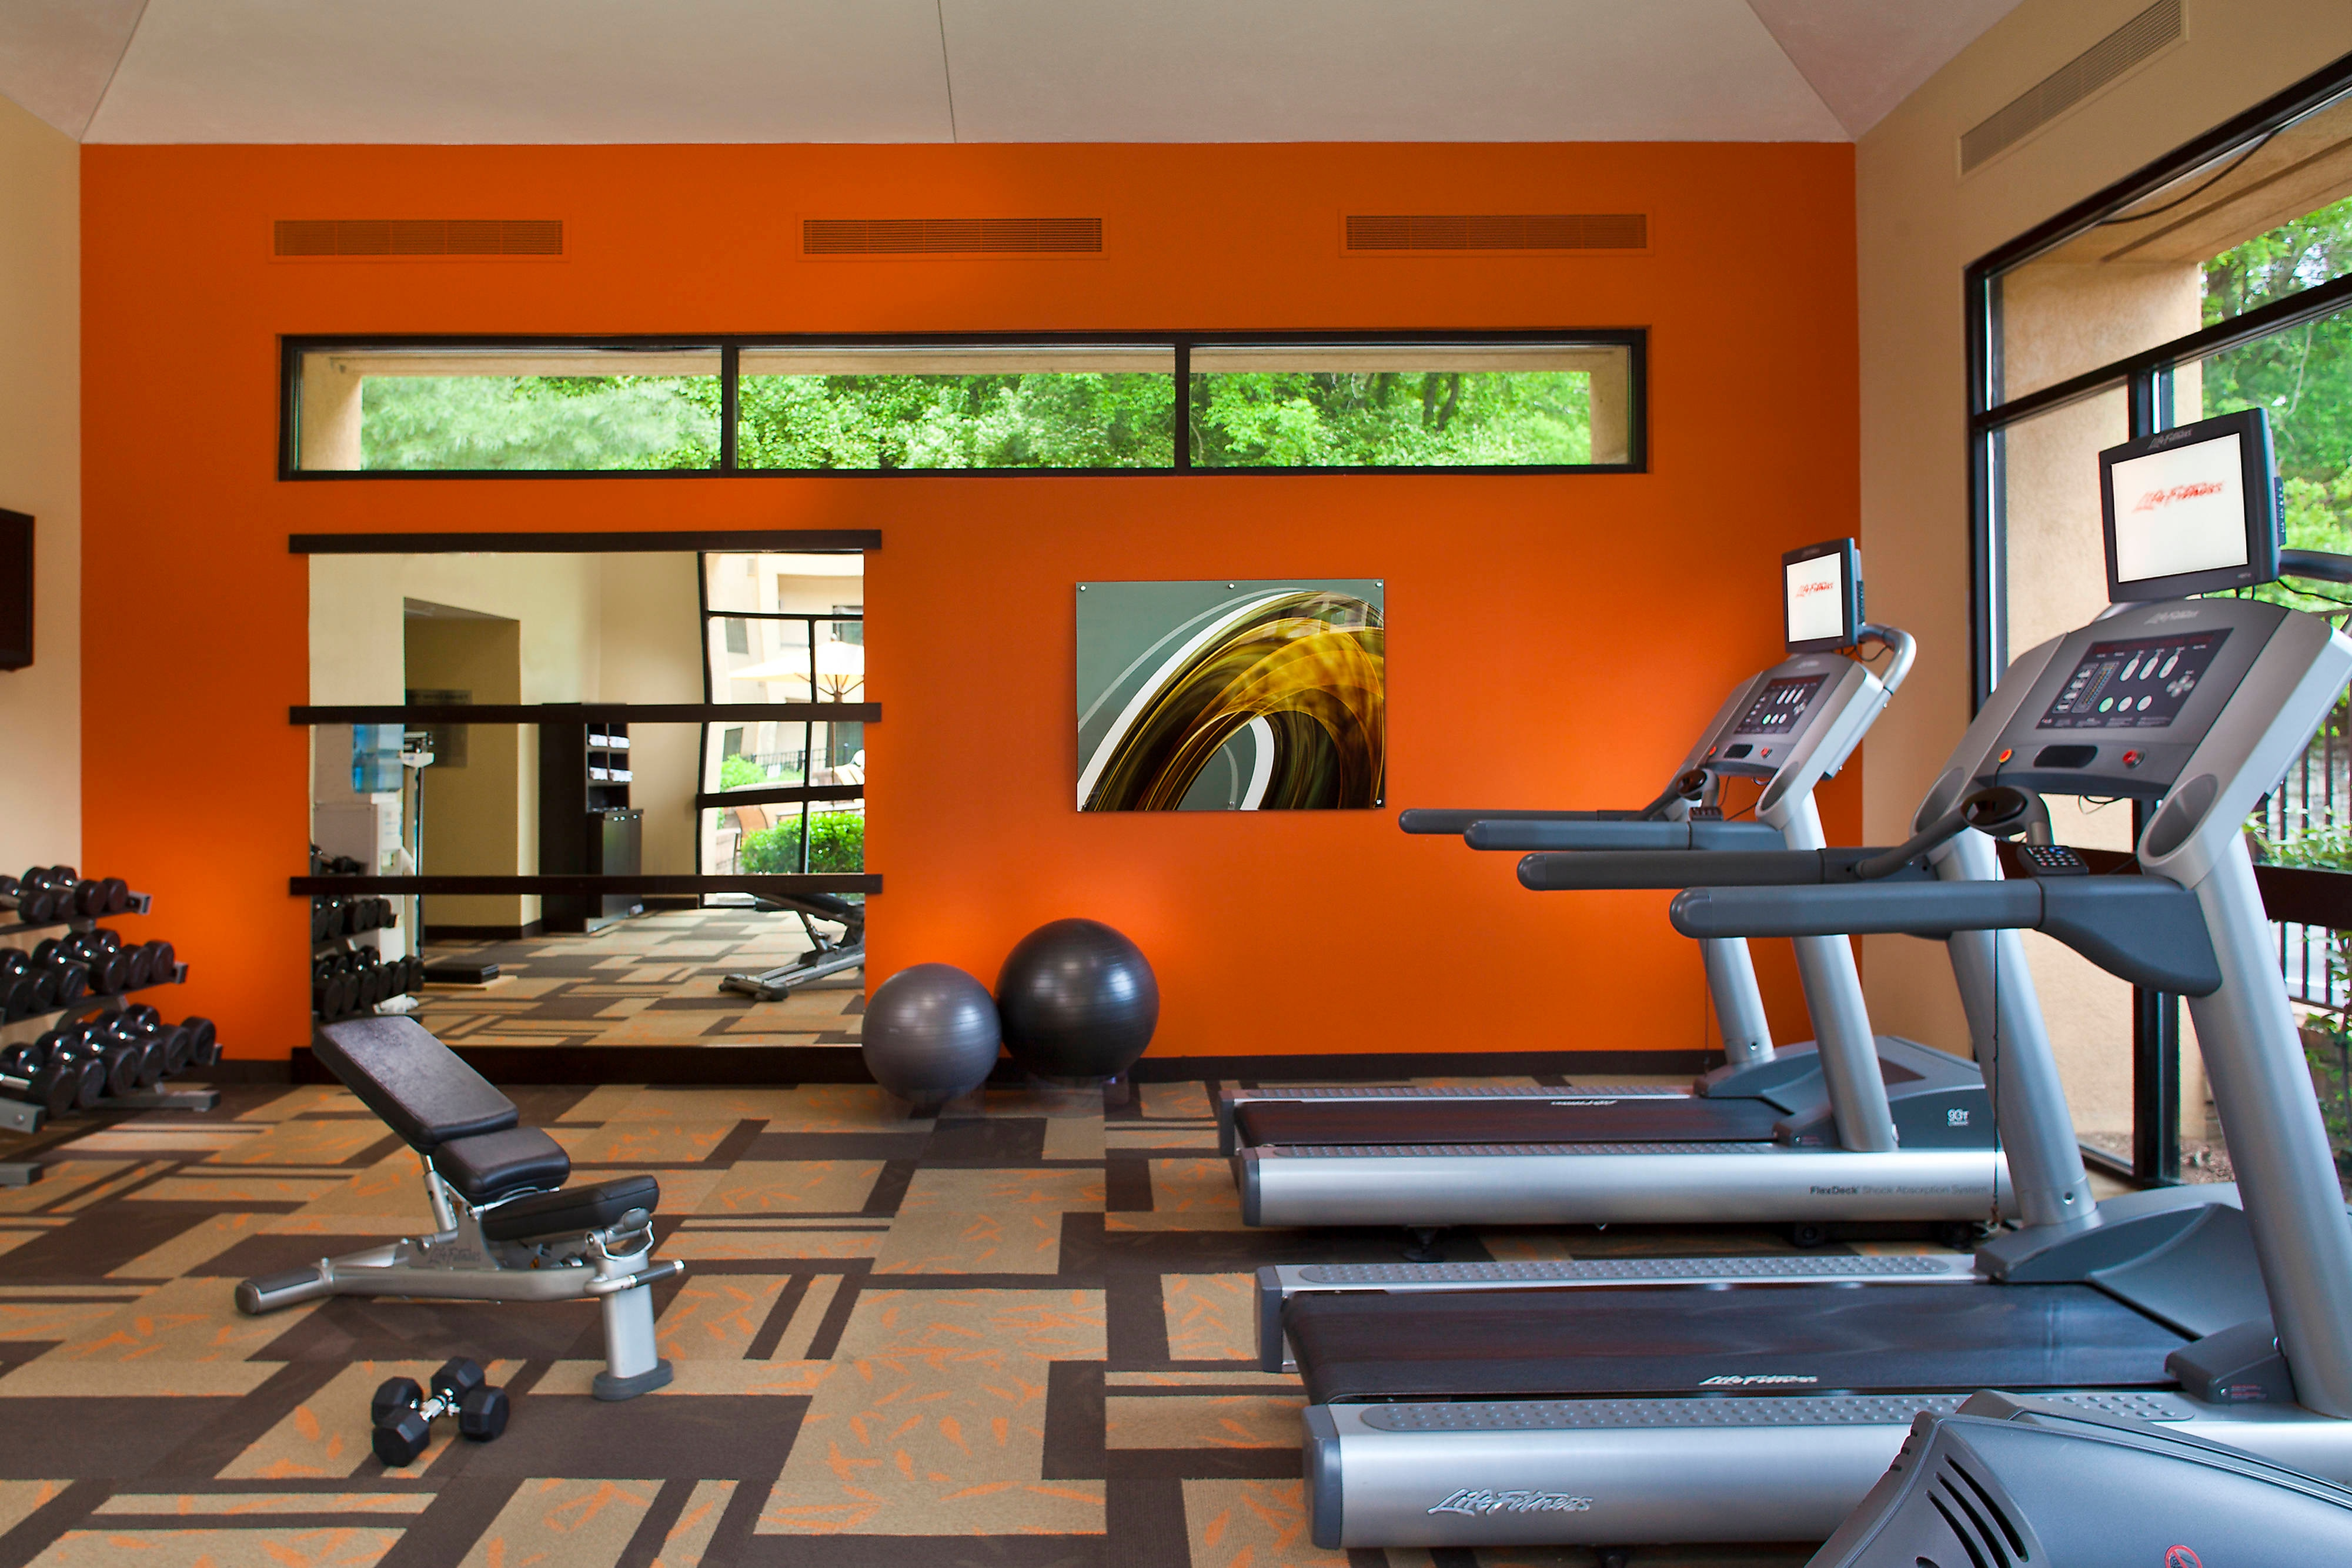 Nashville Airport Hotel Gym